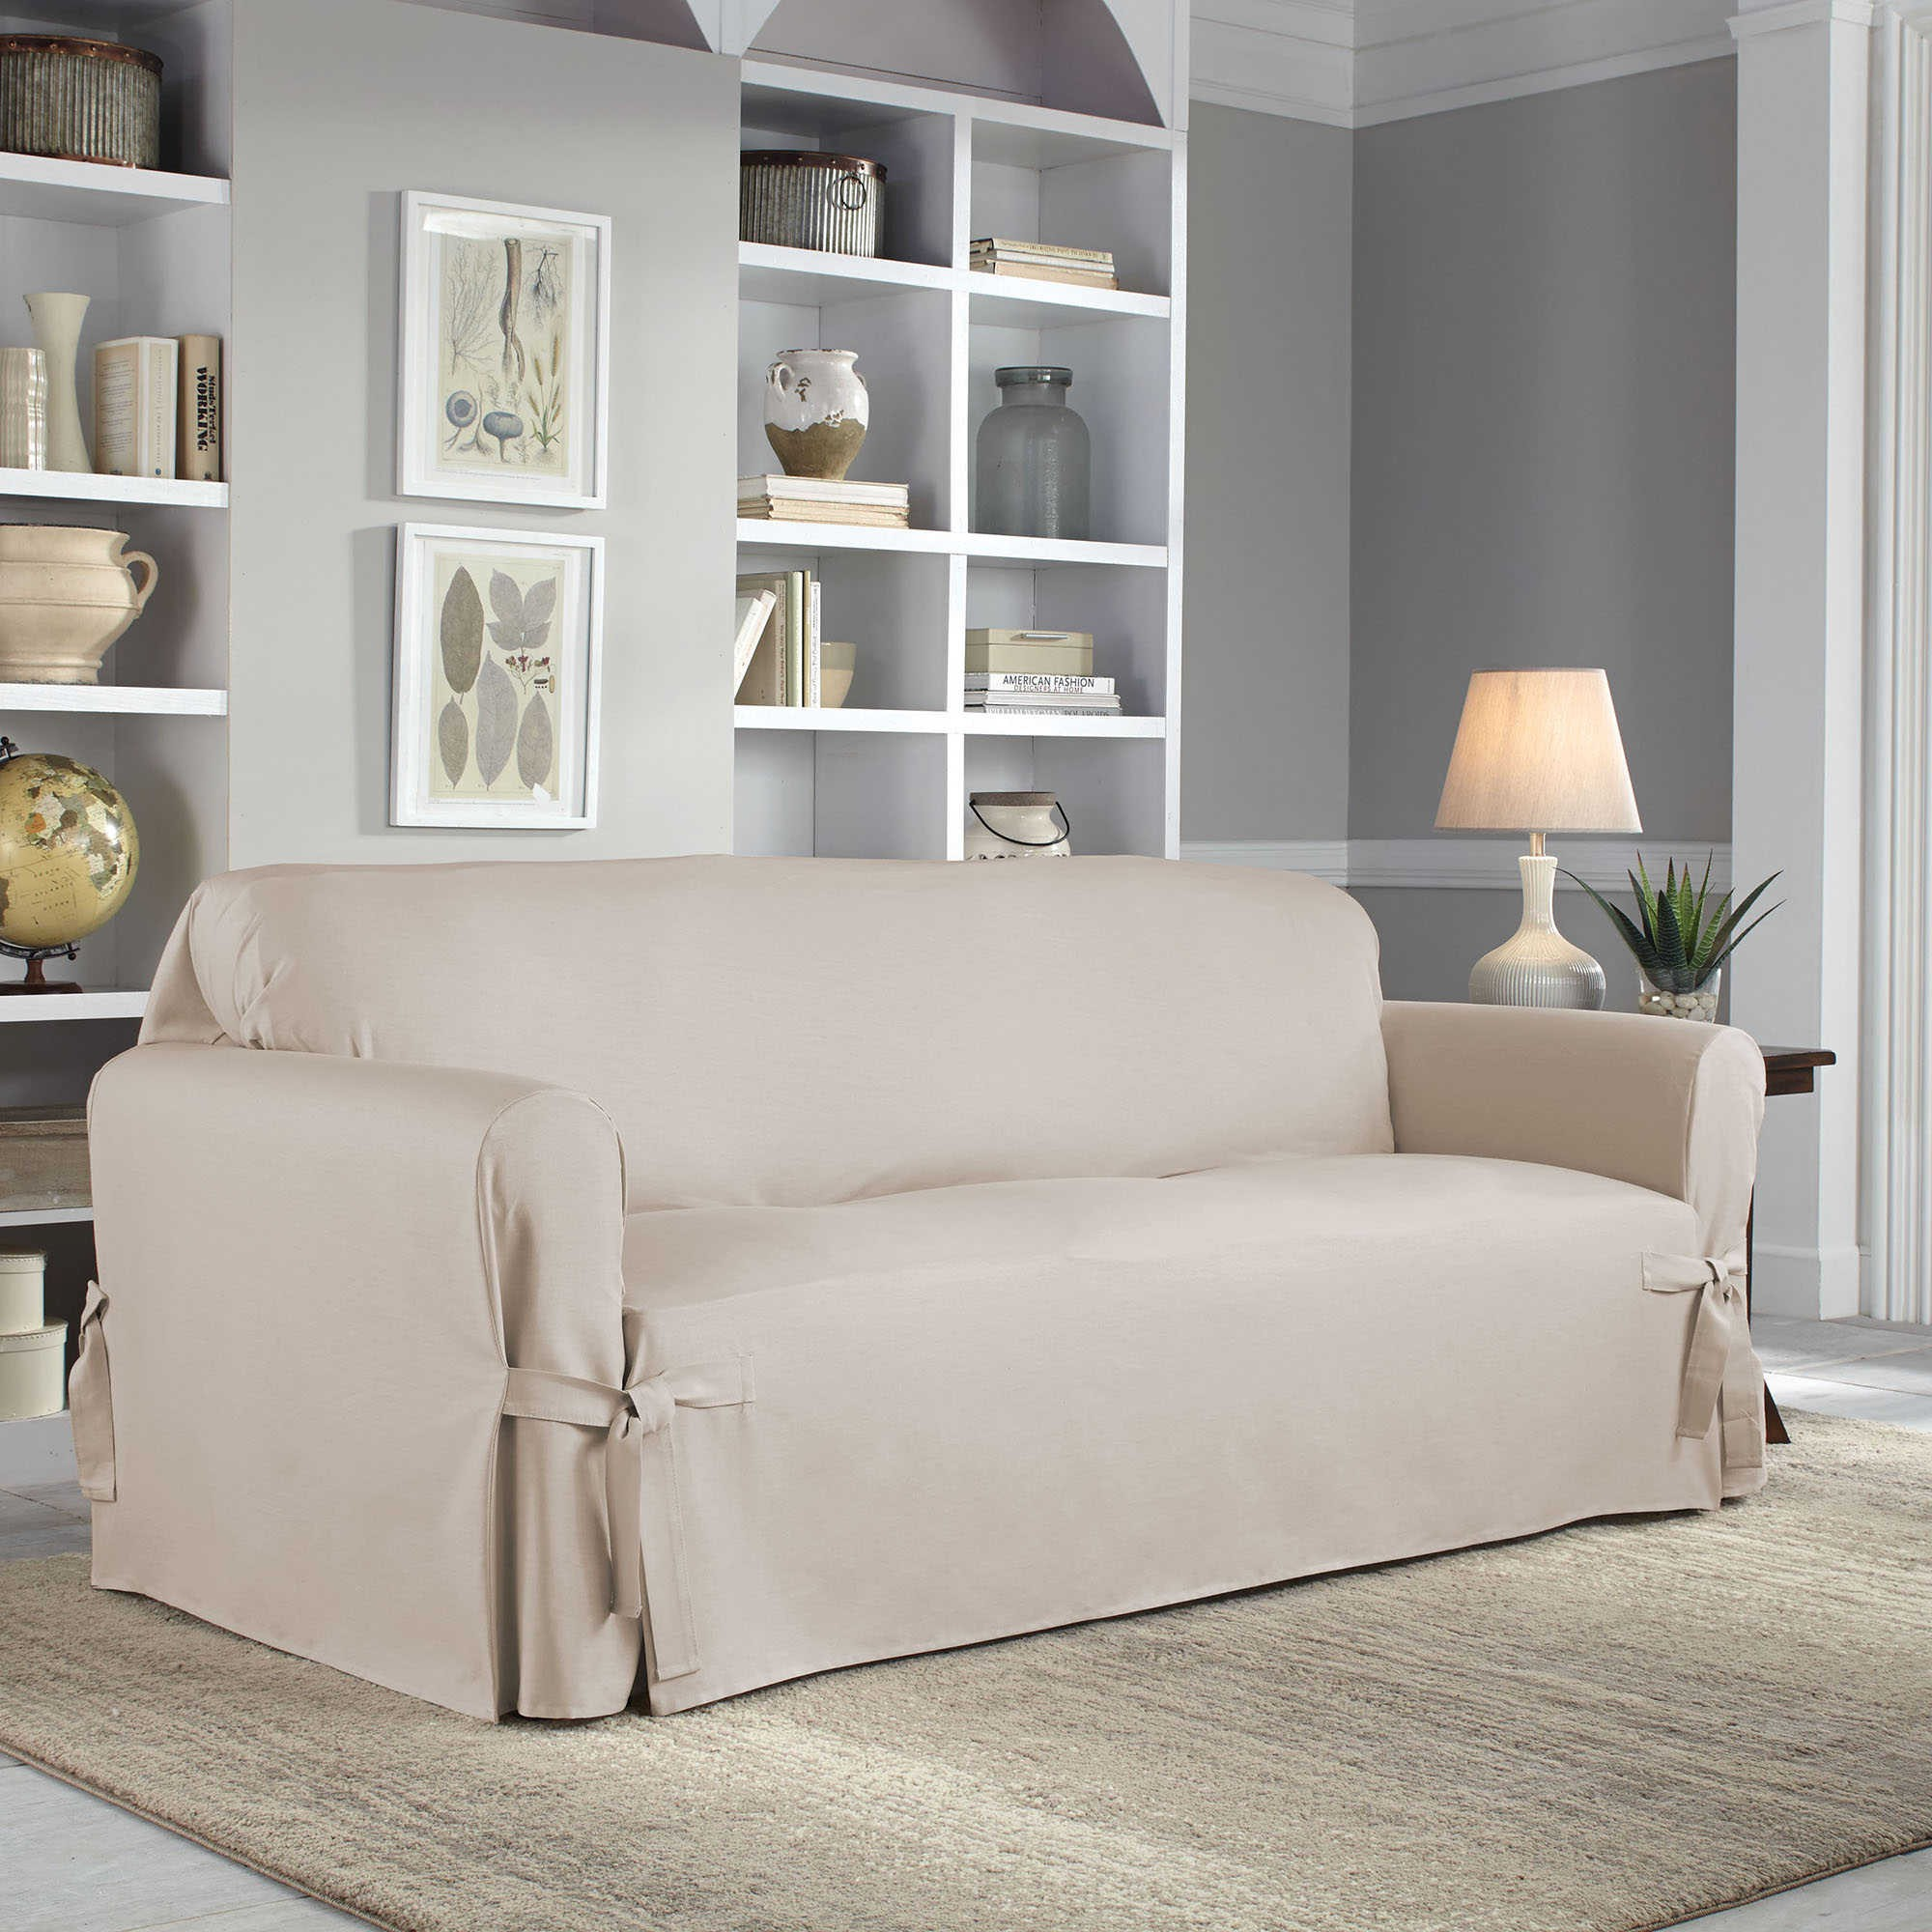 Bed Bath and Beyond sofa Covers Sensational sofa Slipcovers Couch Covers and Furniture Throws Bed Bath Beyond Portrait